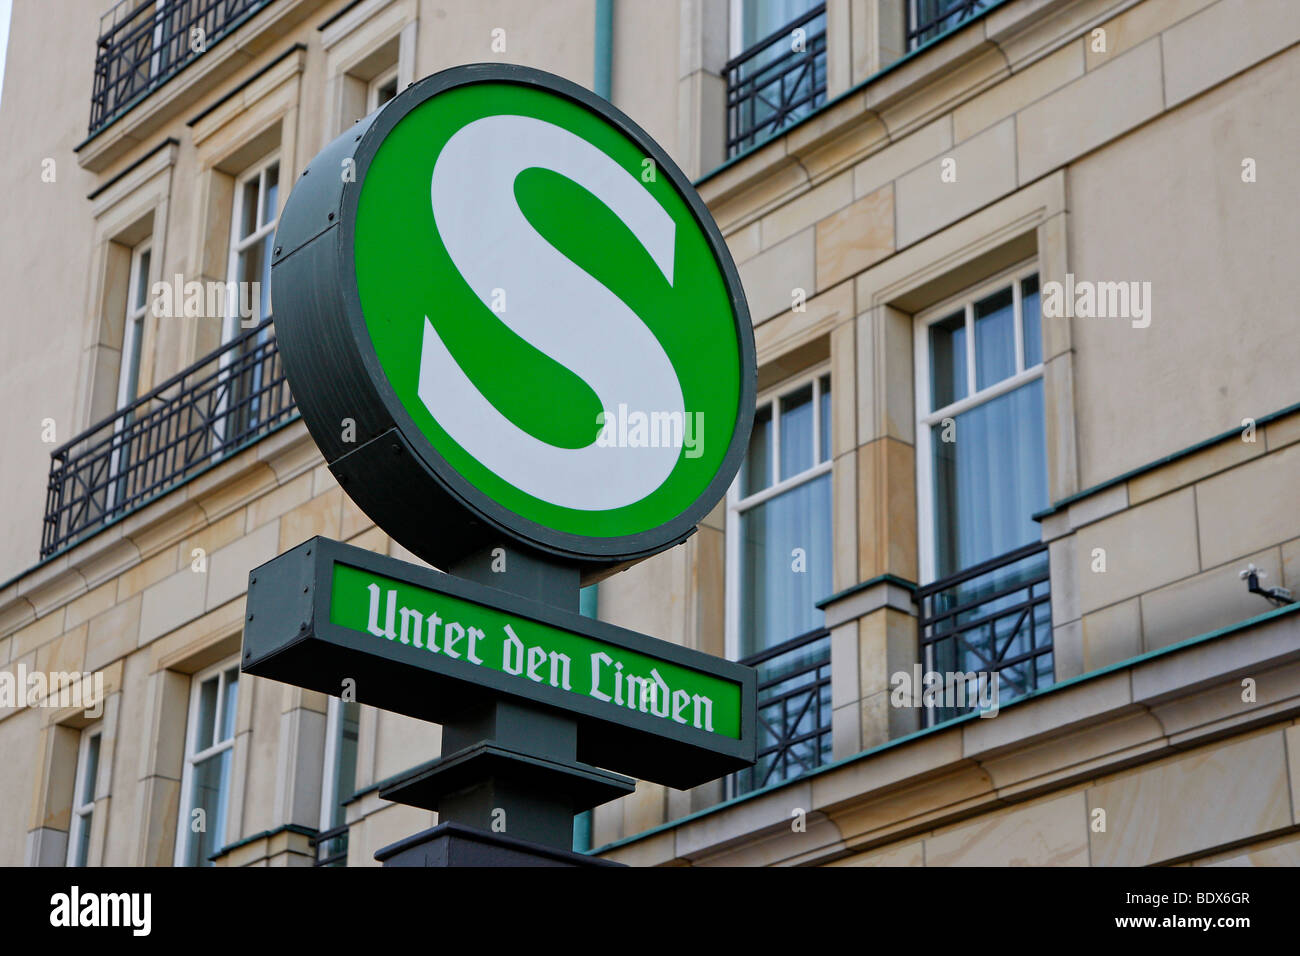 S-Bahn station, Unter den Linden boulevard, Berlin, Germany, Europe - Stock Image